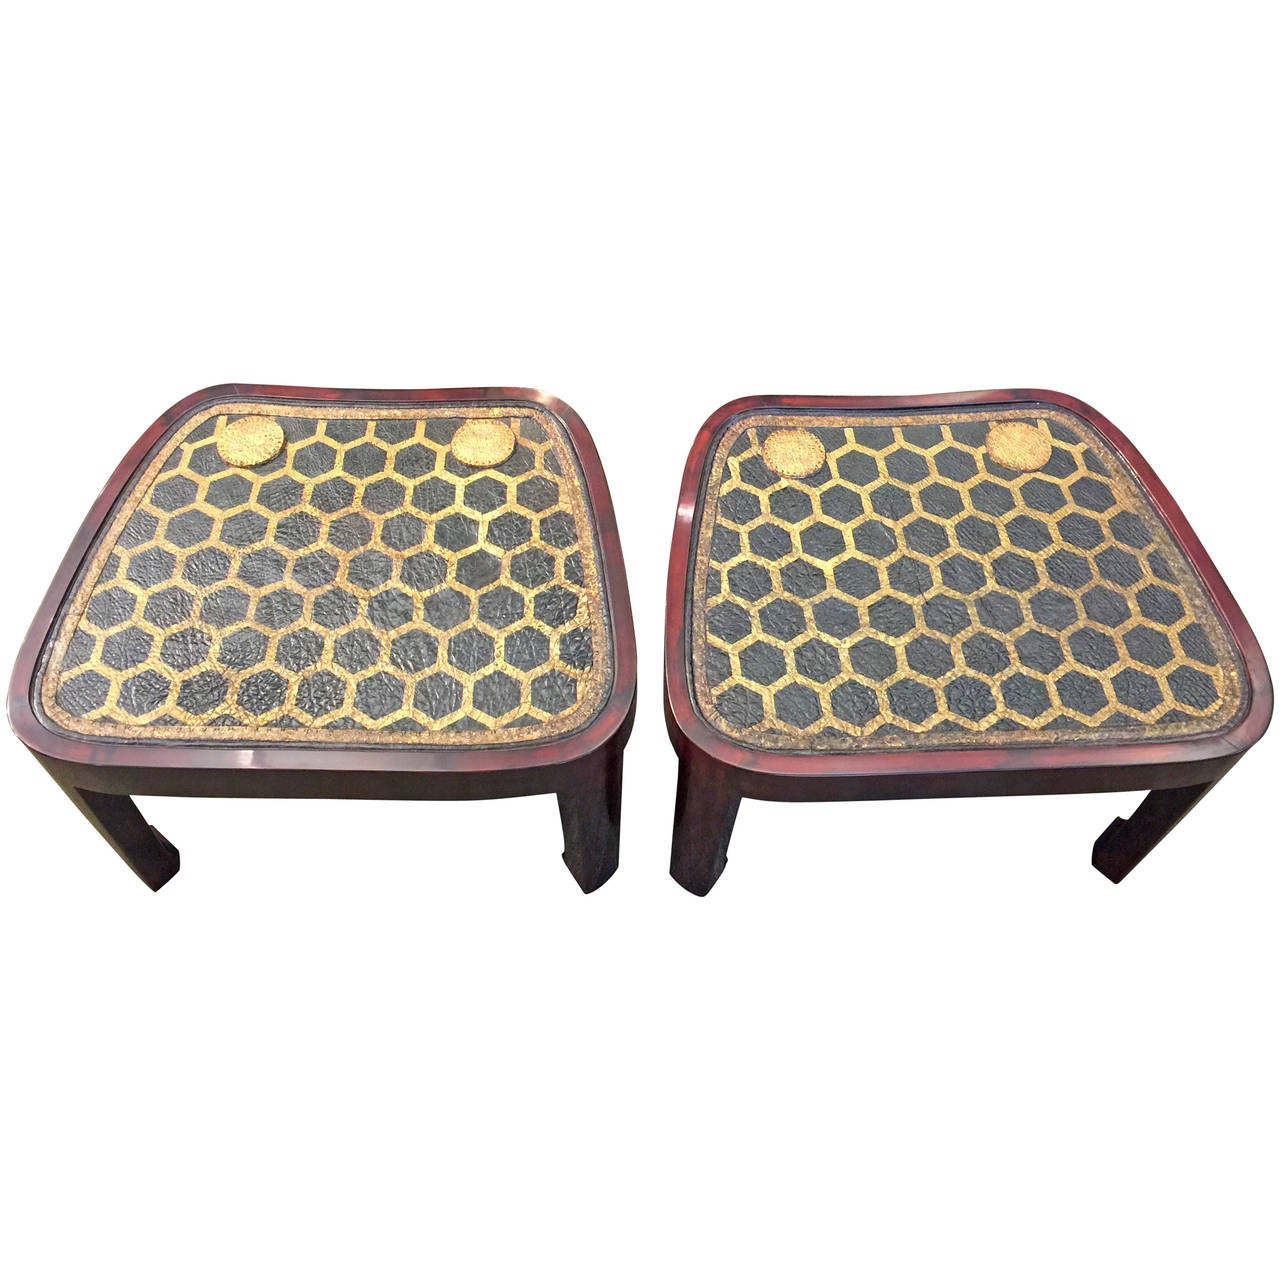 Pair of Lacquer Tables with Leather Samurai Armor Tops For Sale